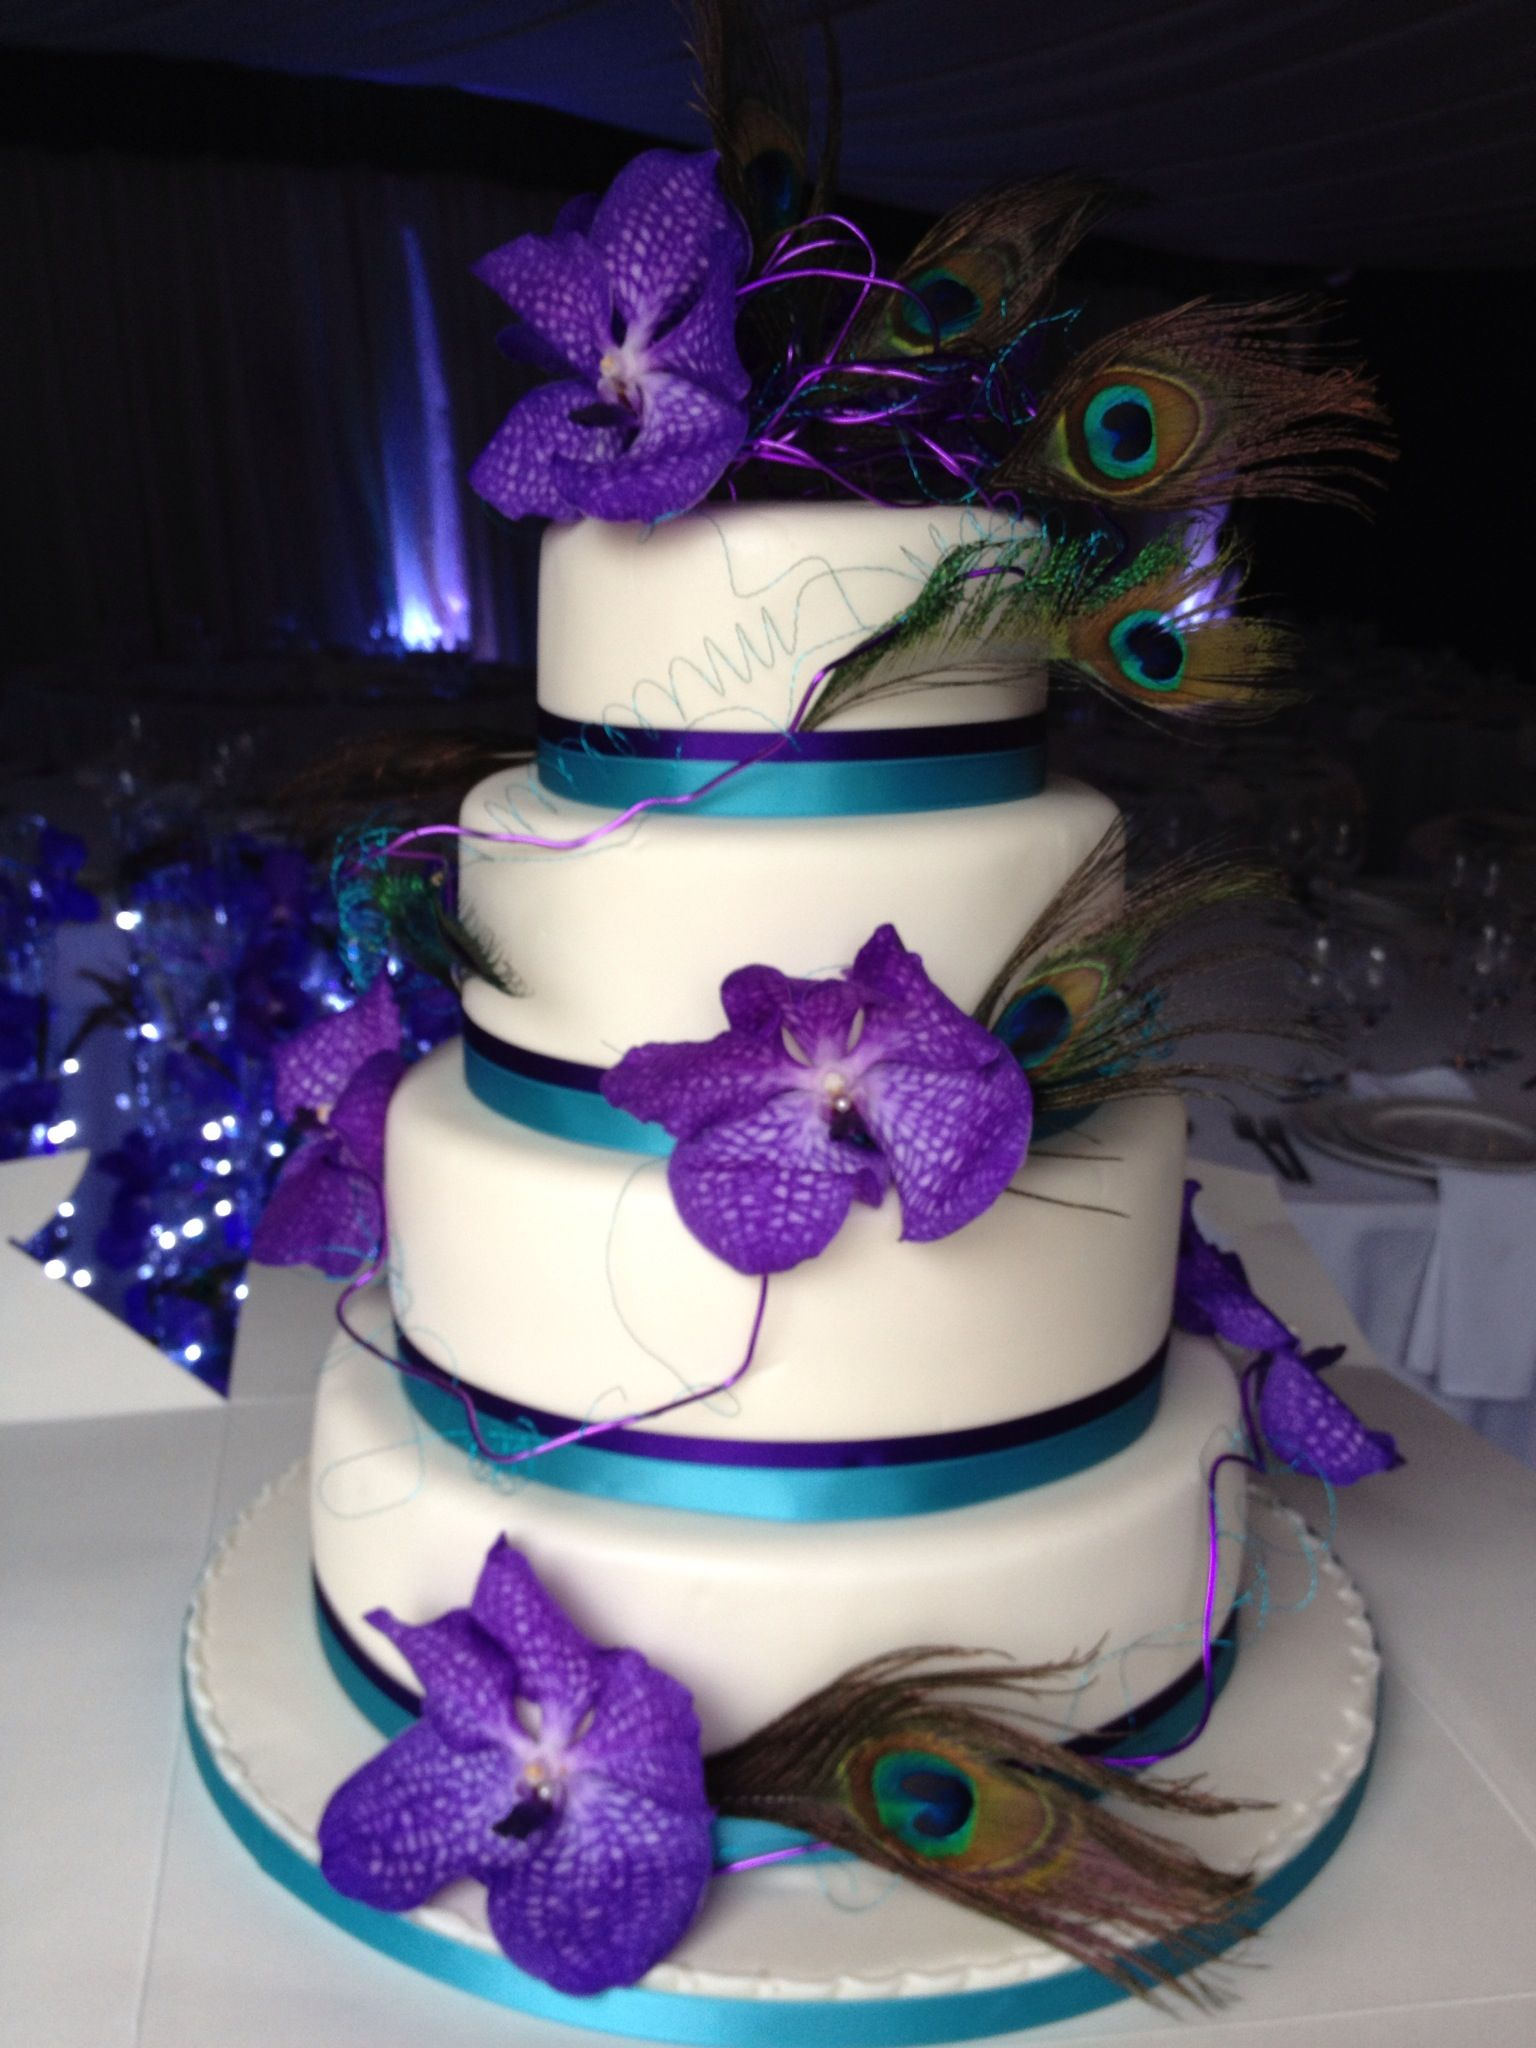 wedding cakes turquoise and purple turquoise amp purple cake without the peacock feathers and 25793